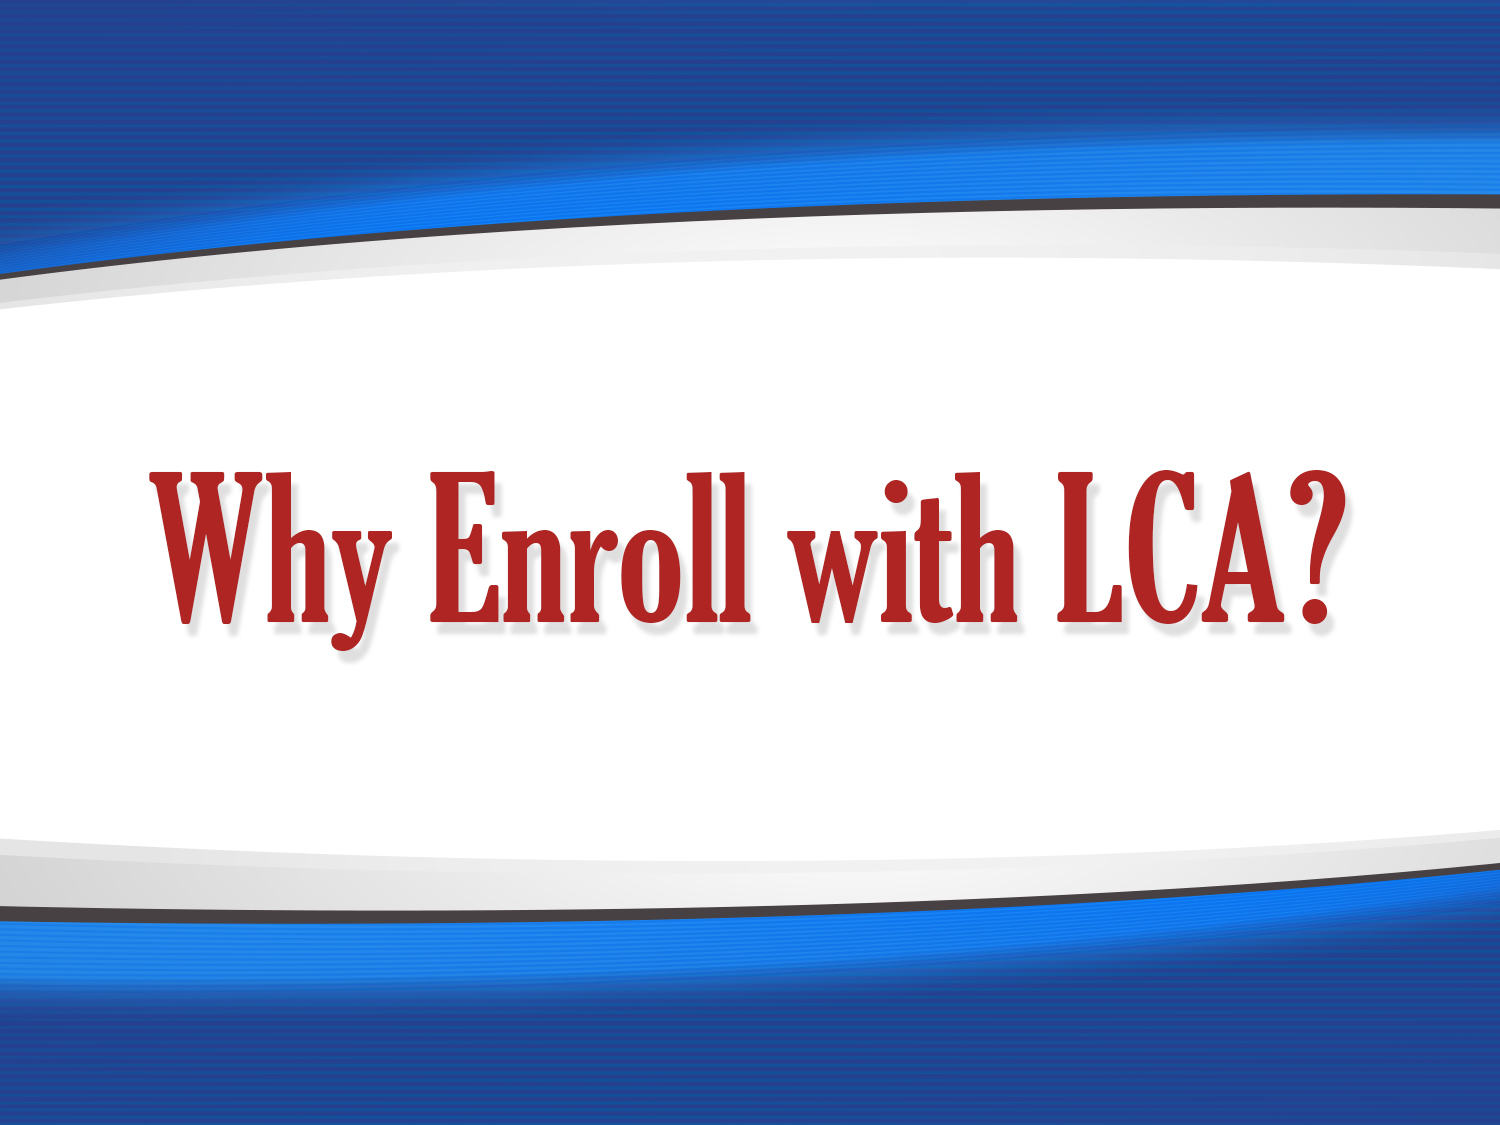 Why Enroll with LCA